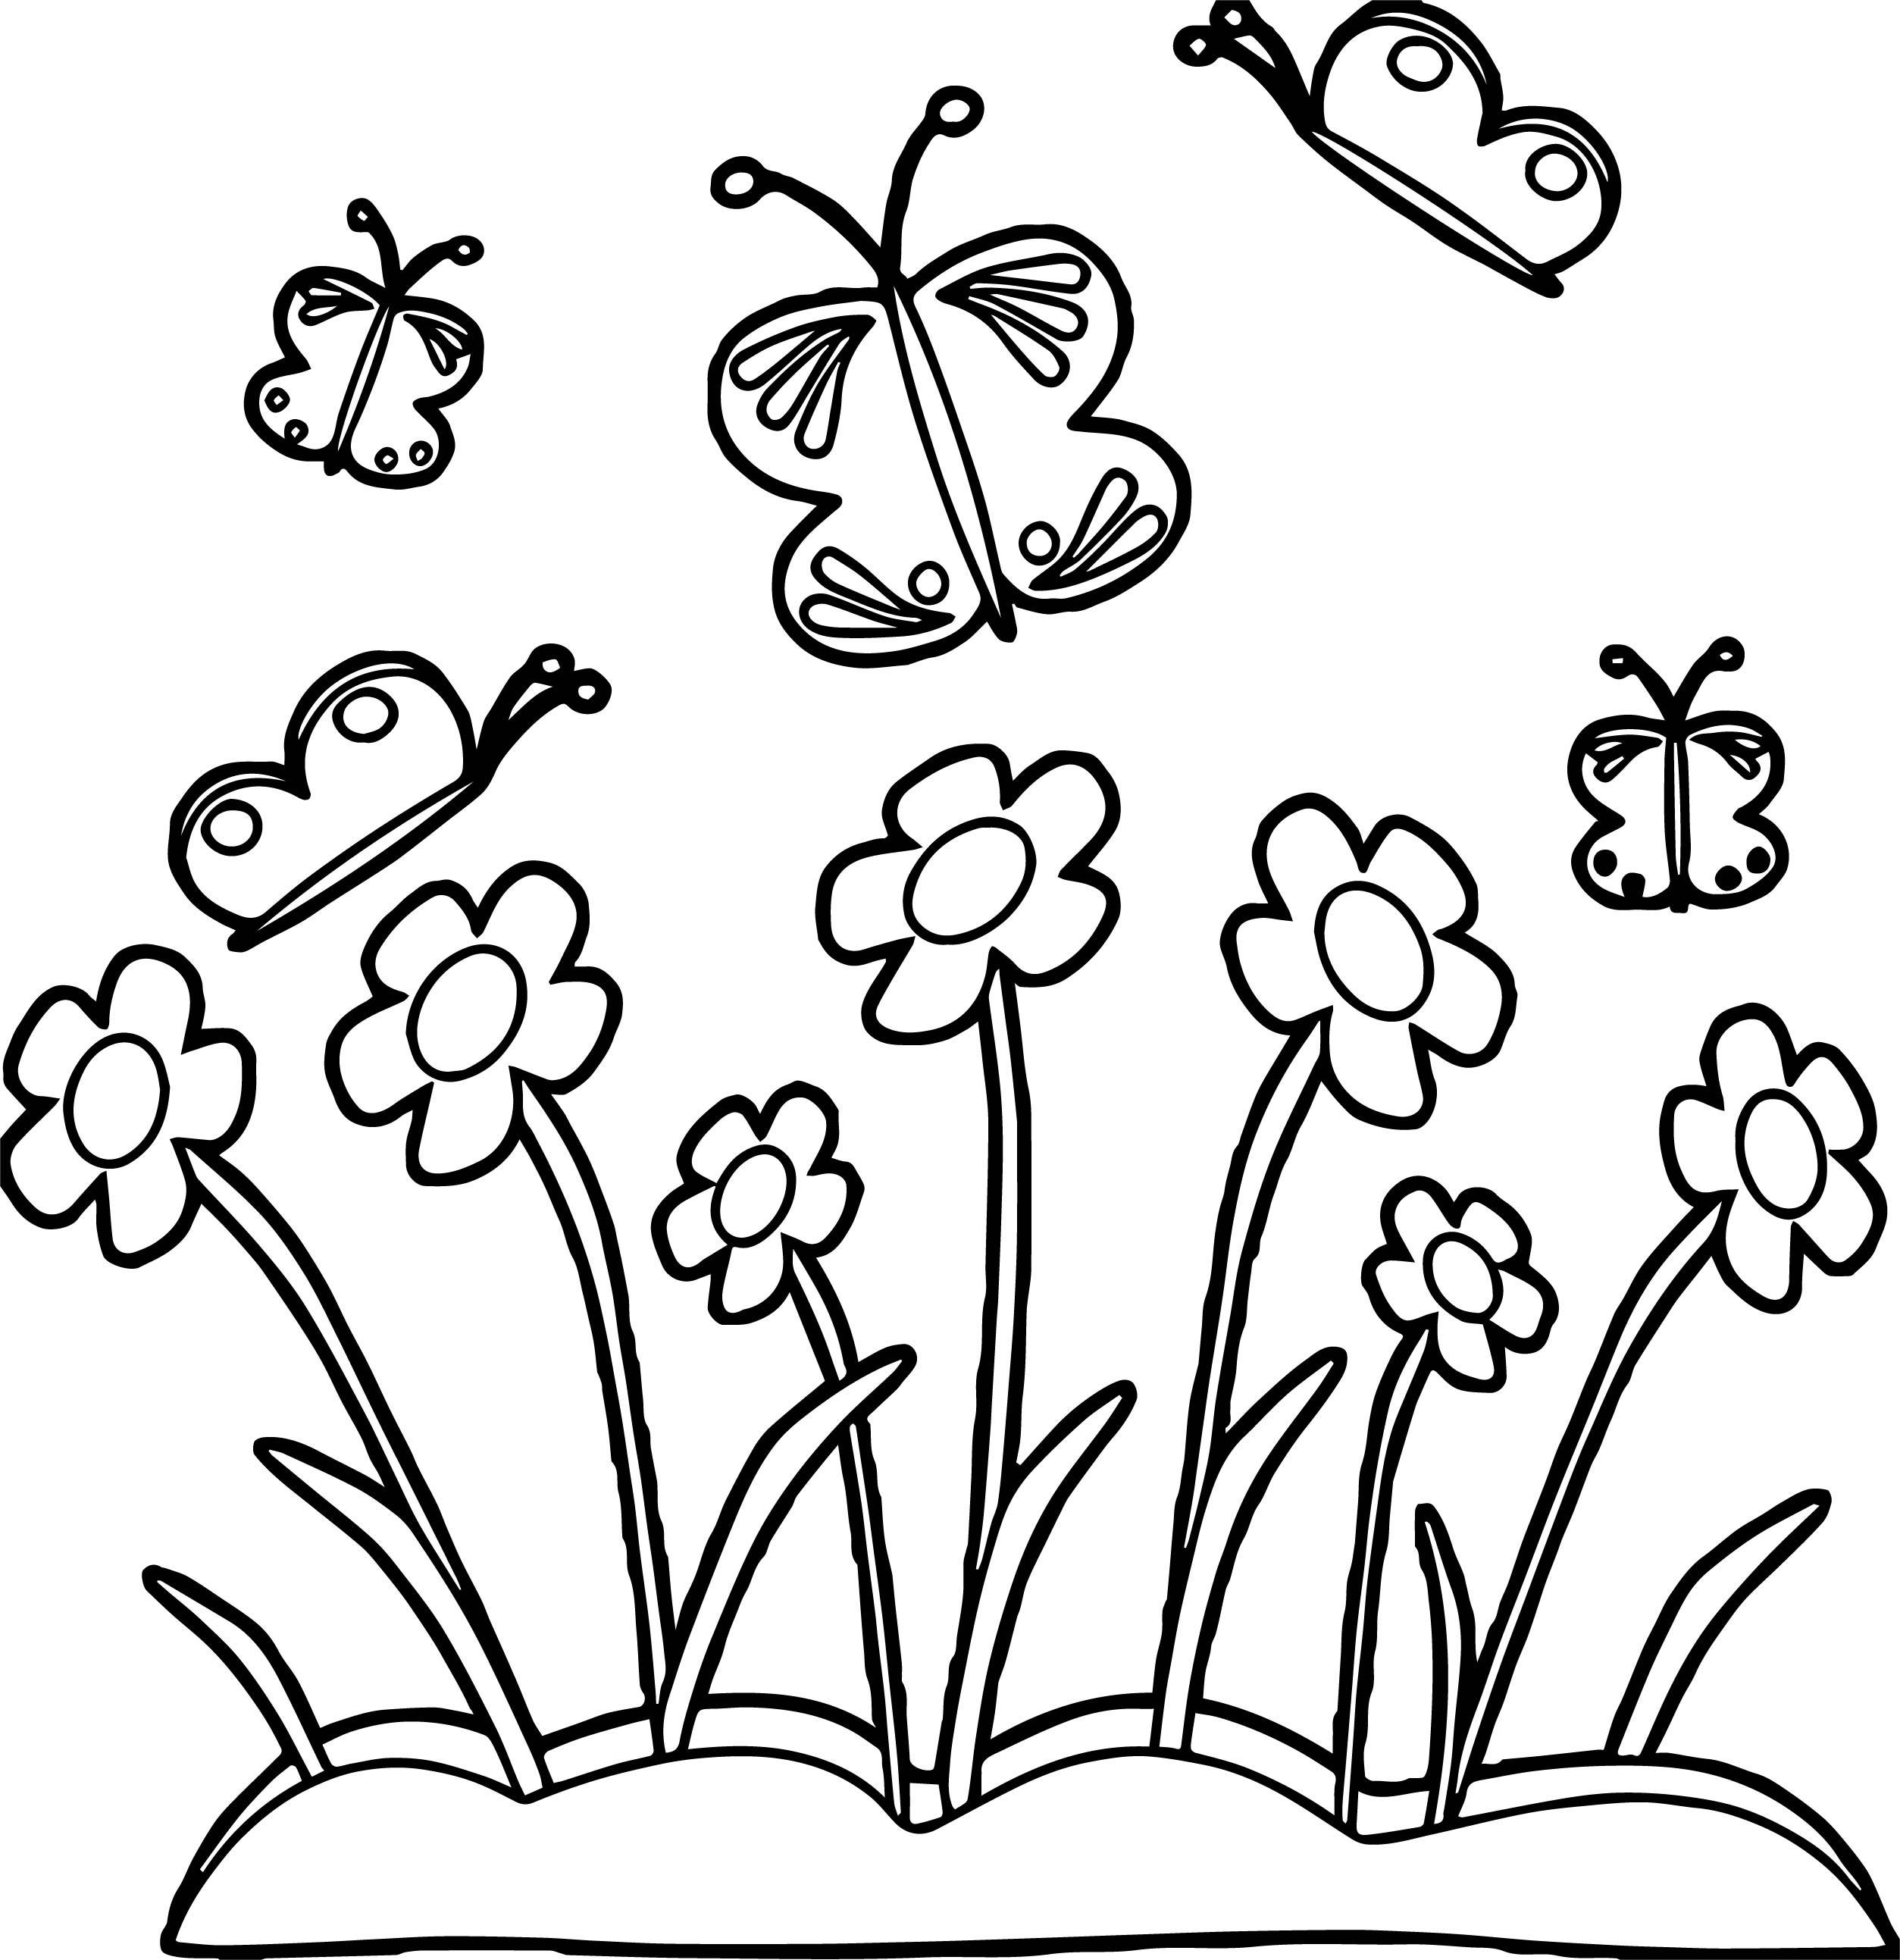 Coloring Page Border At Getcolorings